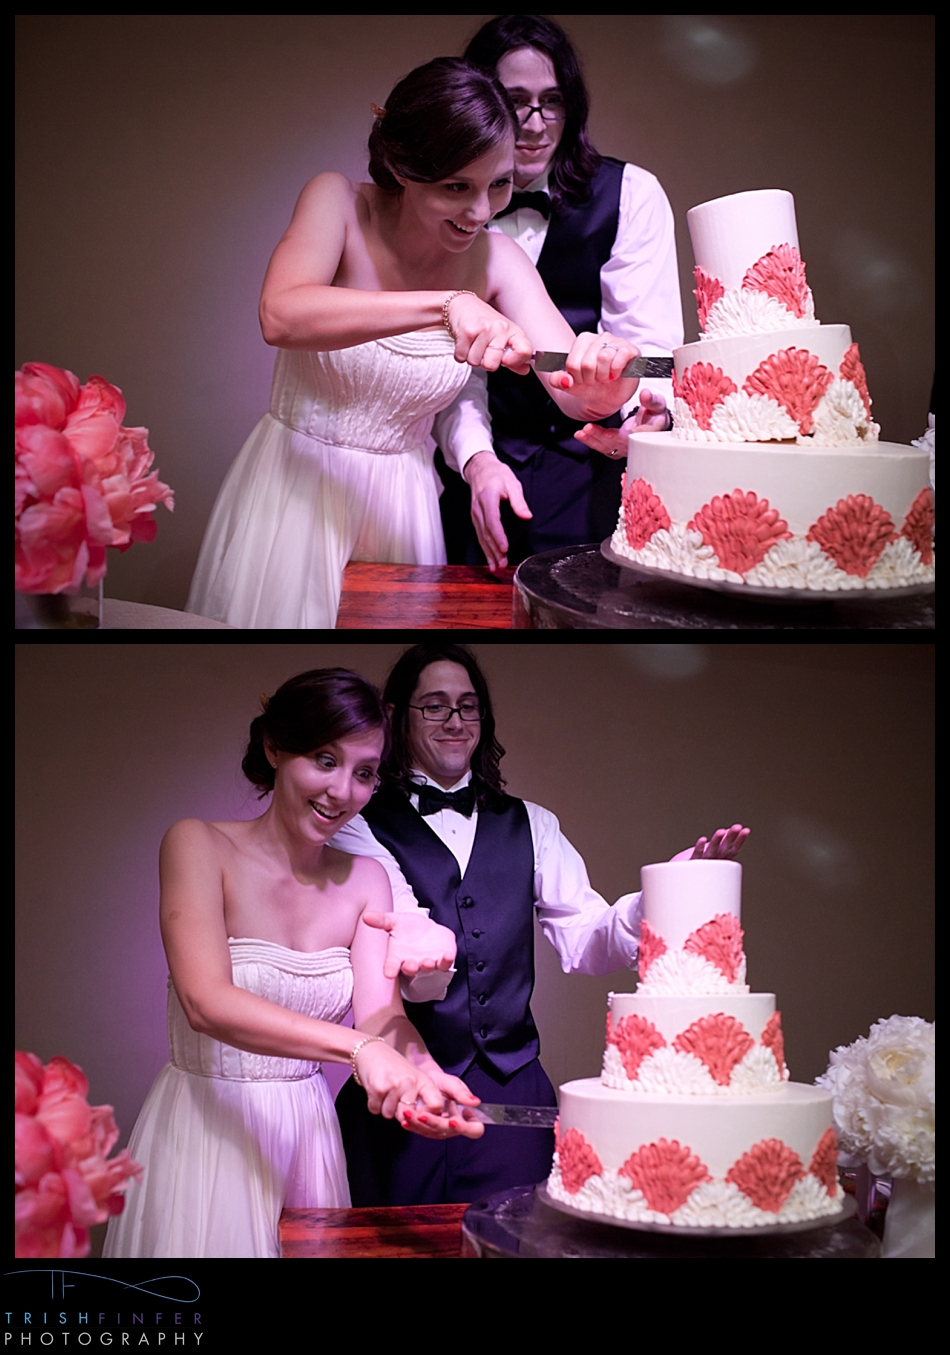 Bride Groom Cake Cutting